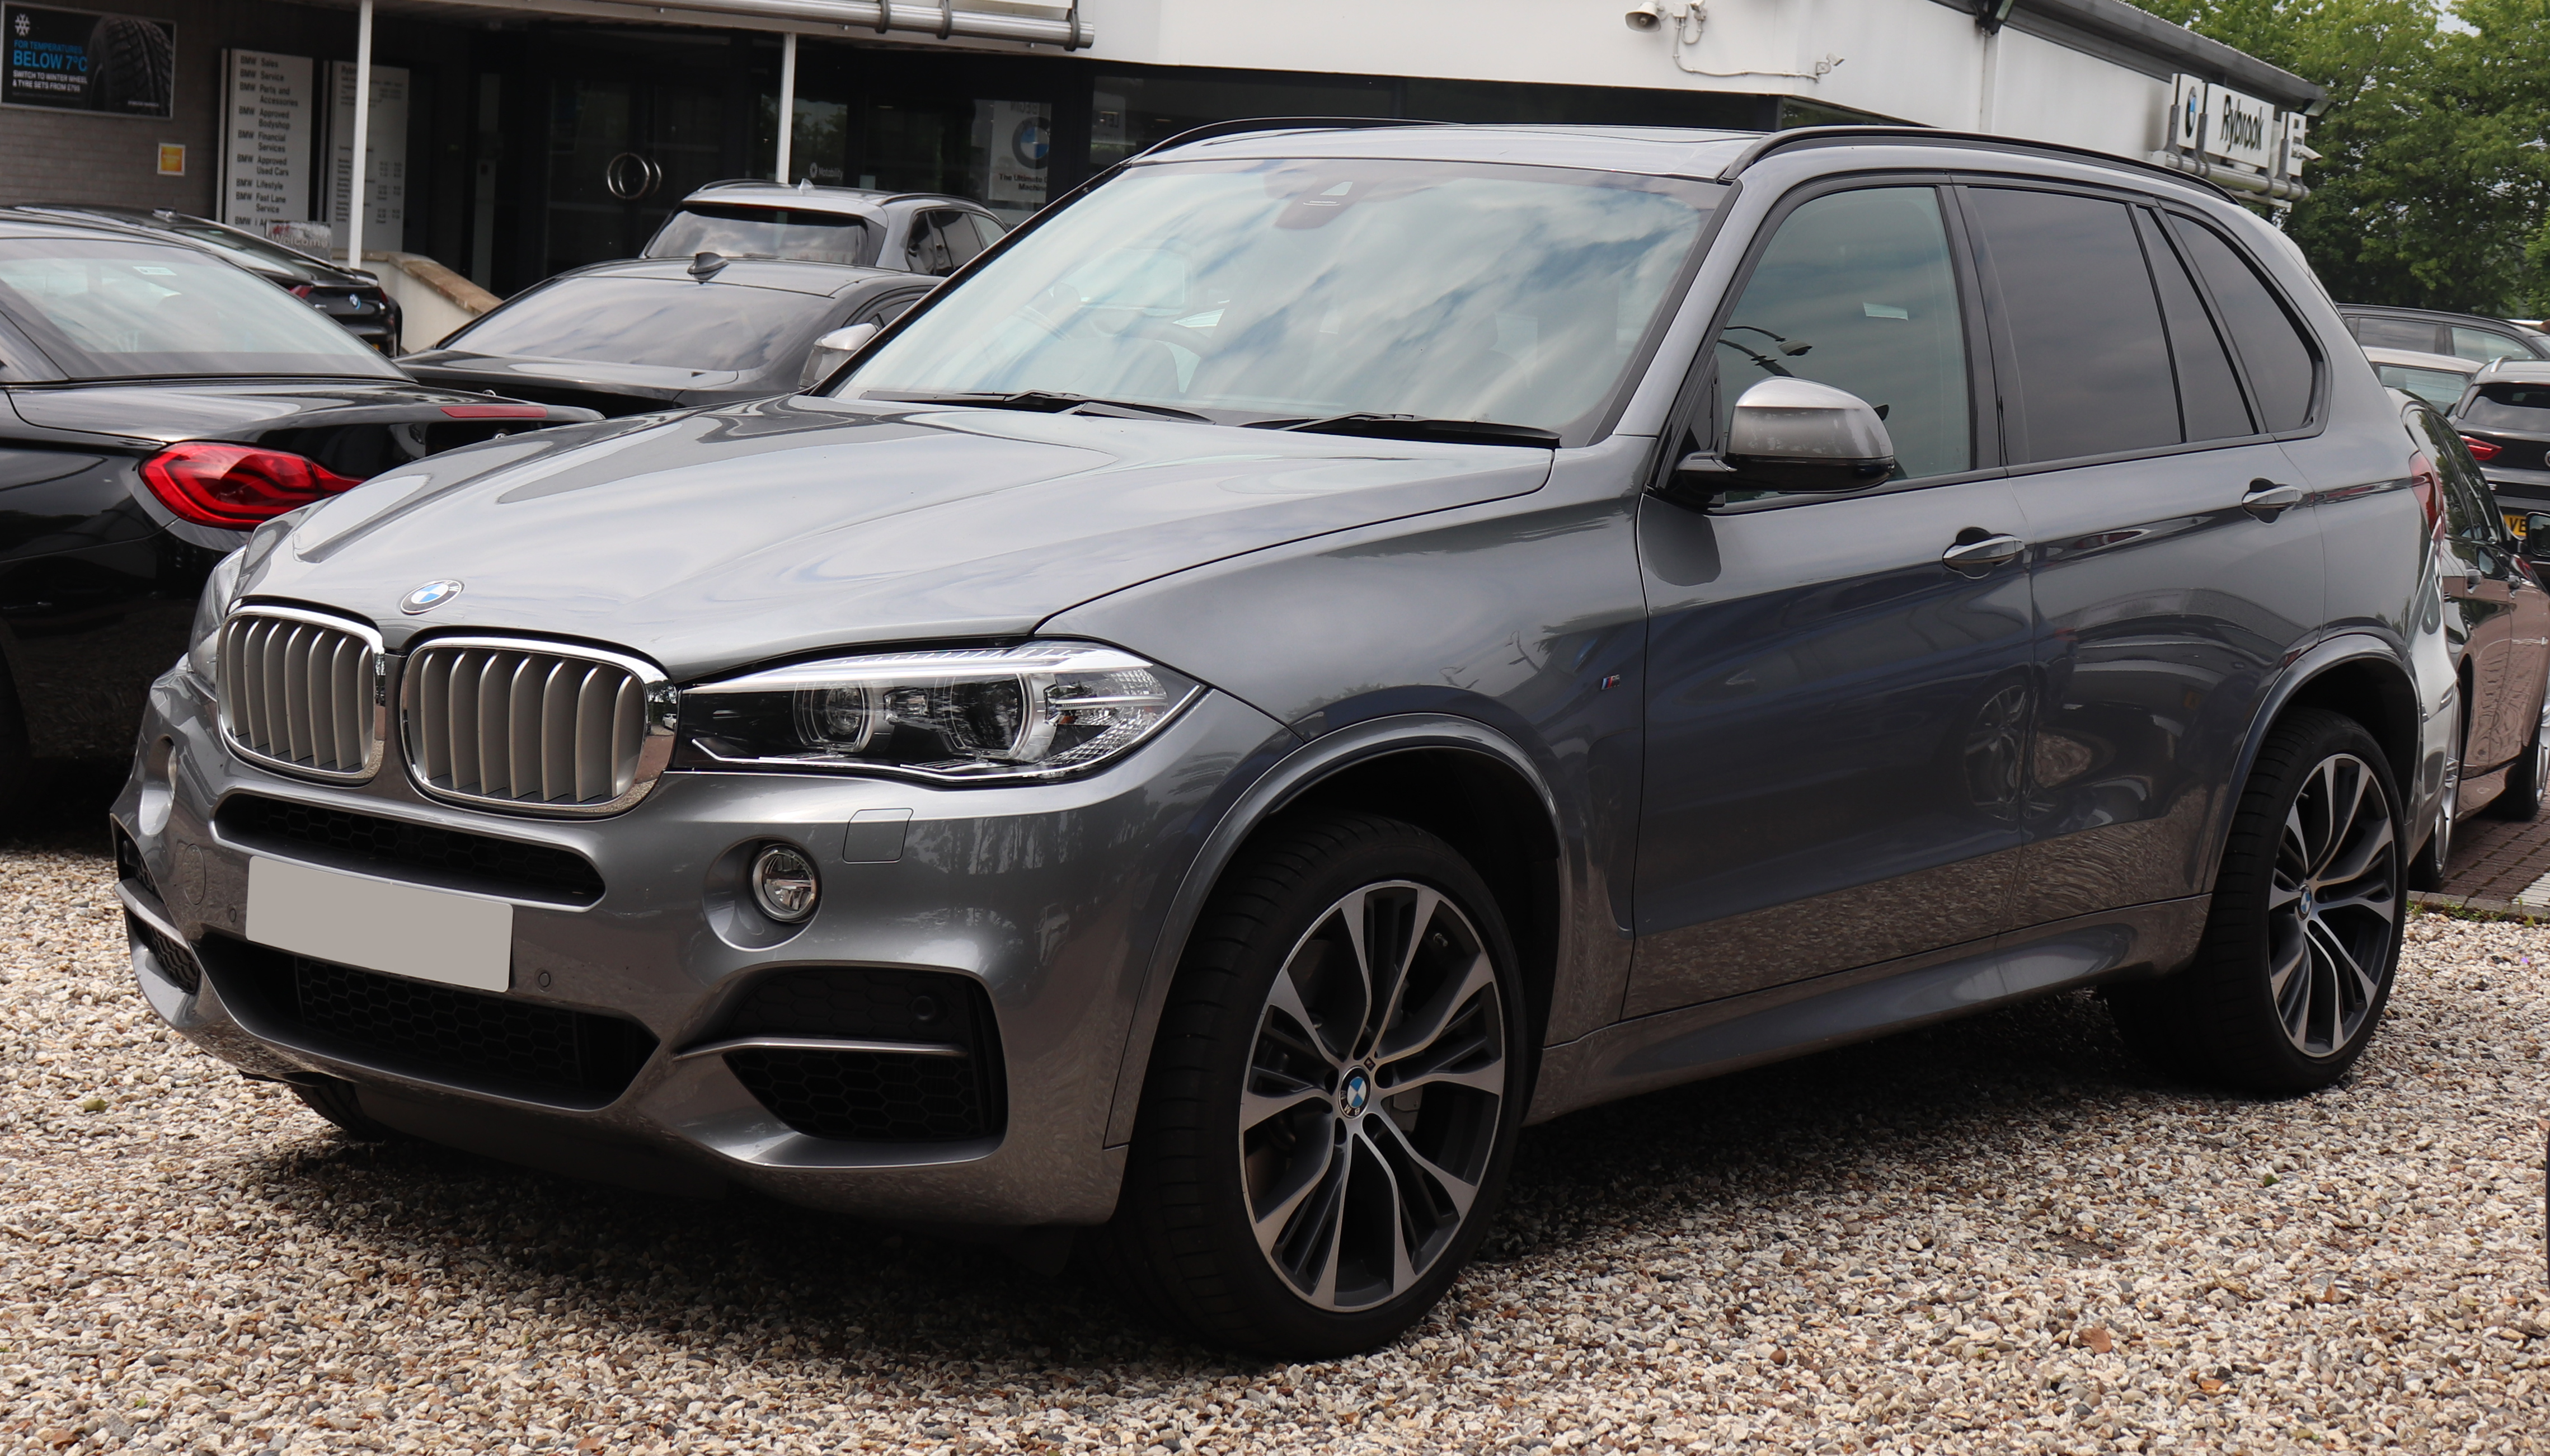 File2018 Bmw X5 M50d Automatic 30 Frontjpg Wikimedia Commons